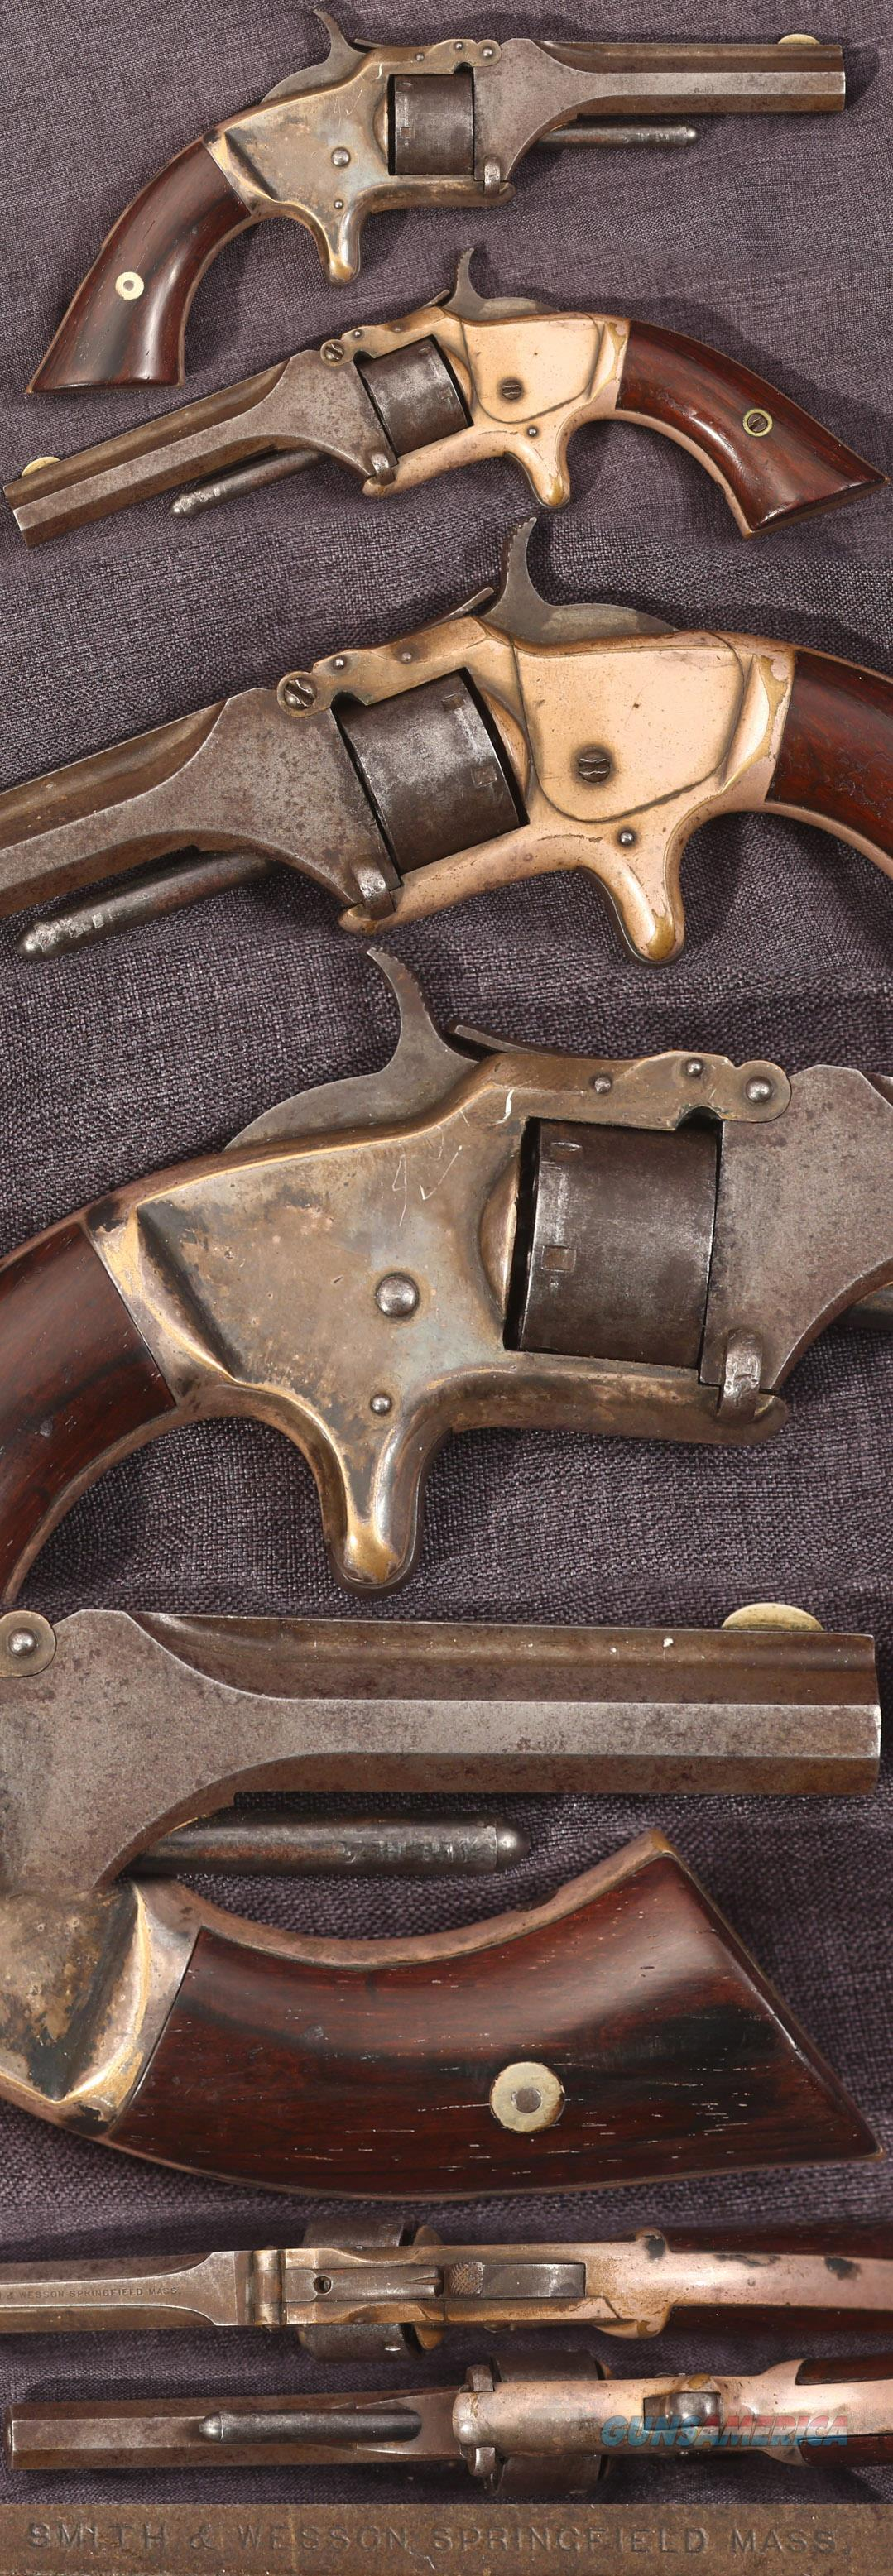 Smith & Wesson first model, second issue 22 revolver  Guns > Pistols > Smith & Wesson Revolvers > Pre-1899